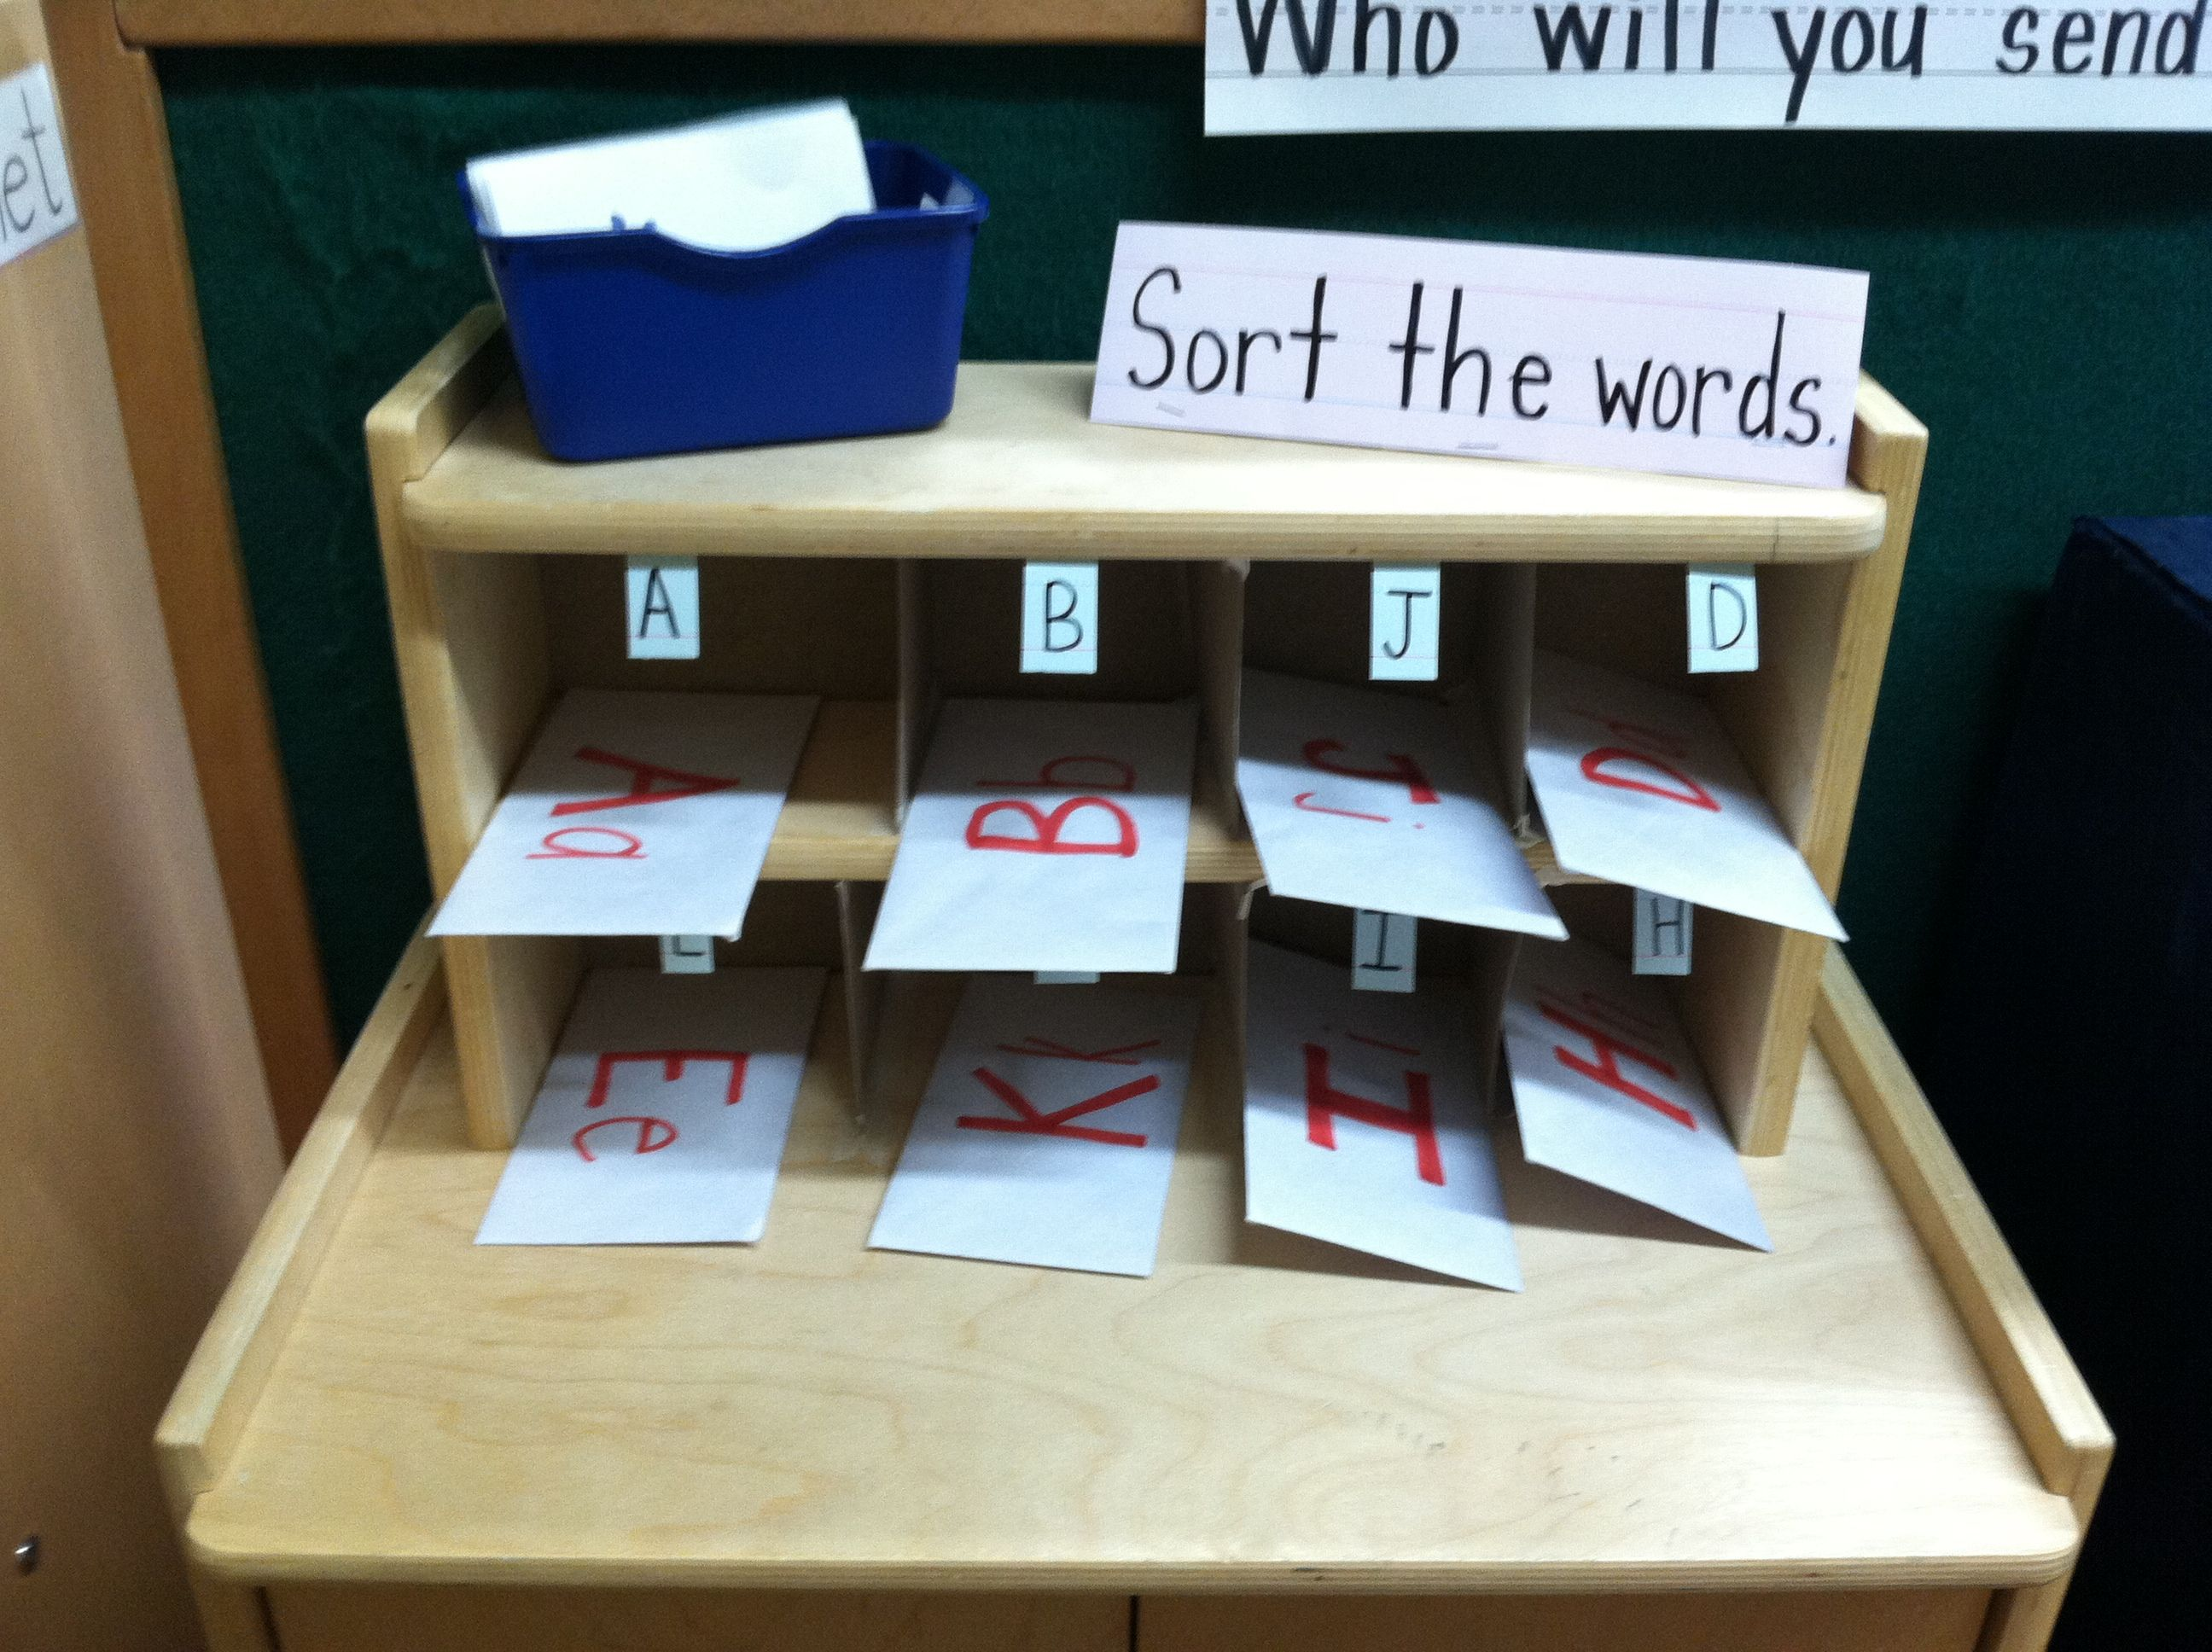 Preschool post office game. Sort the mail! Sort the words